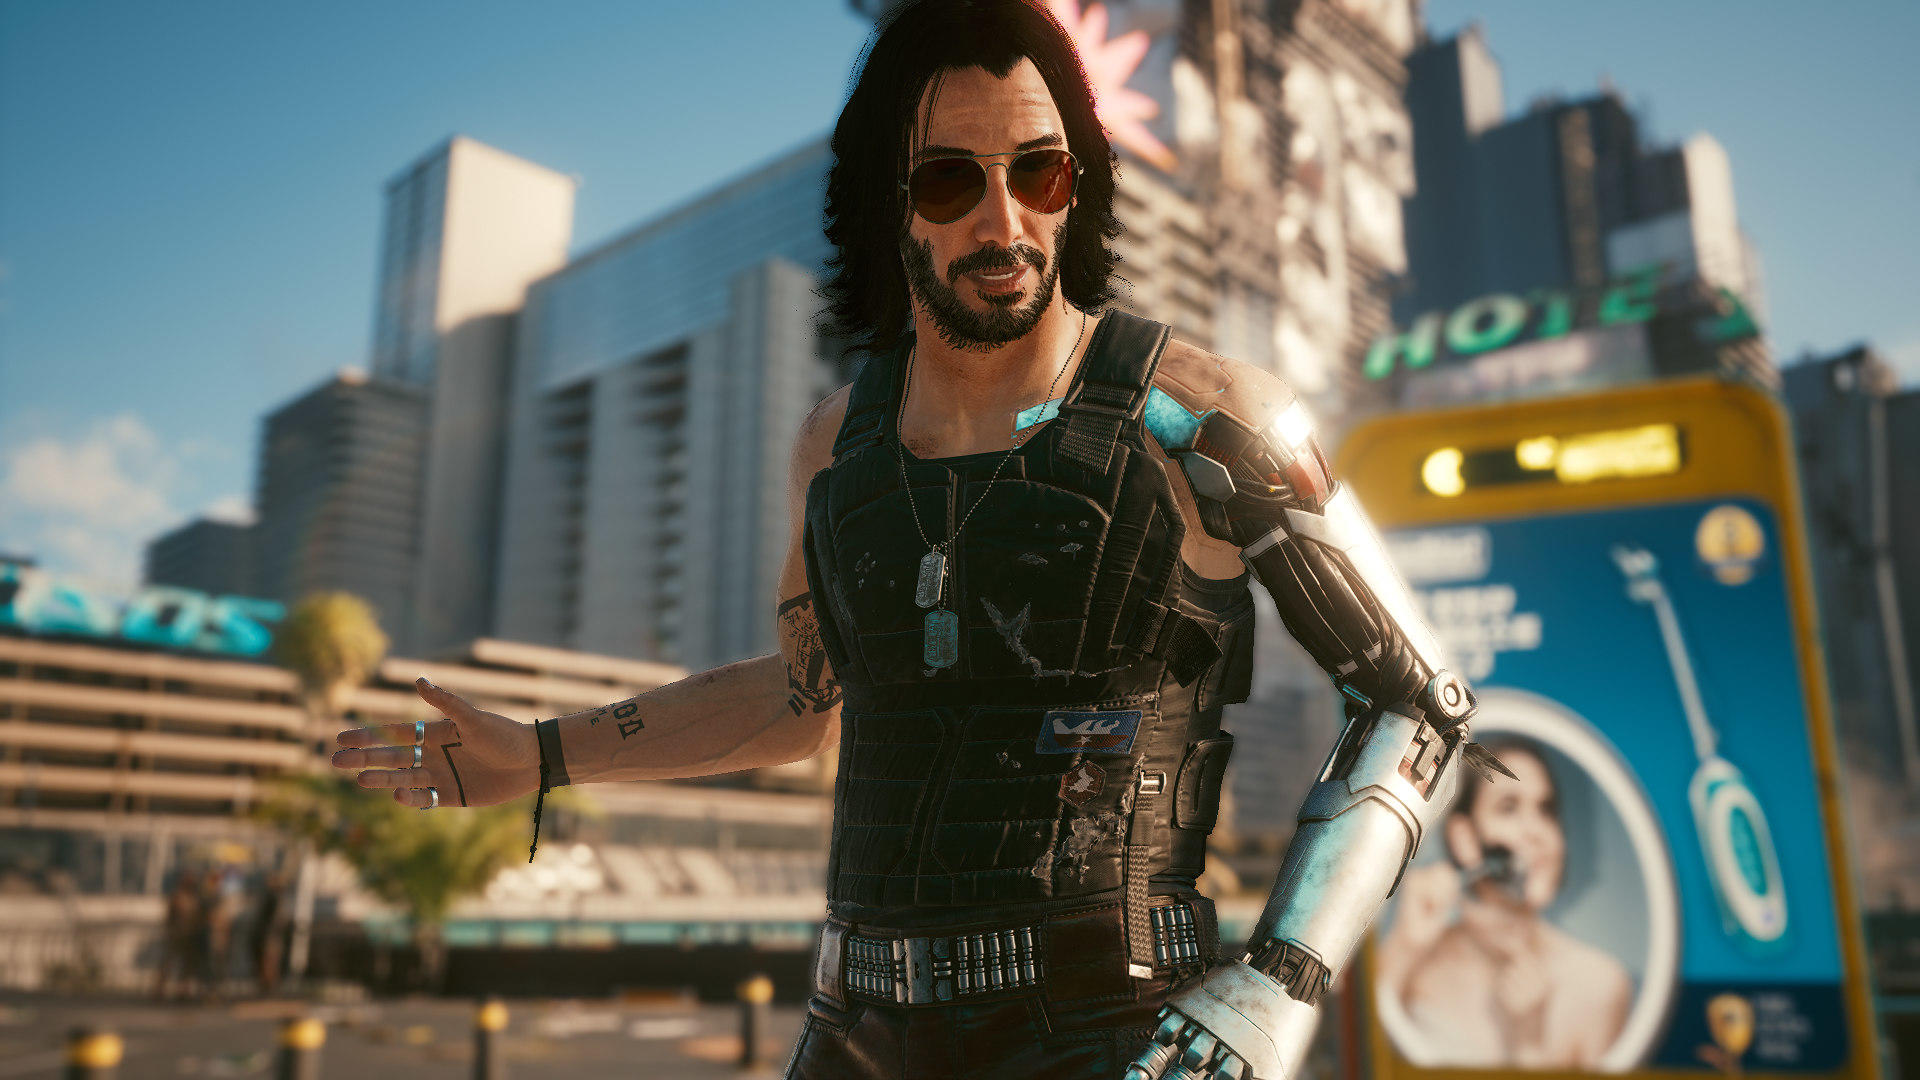 Sony removes Cyberbank 2077 from PlayStation Store